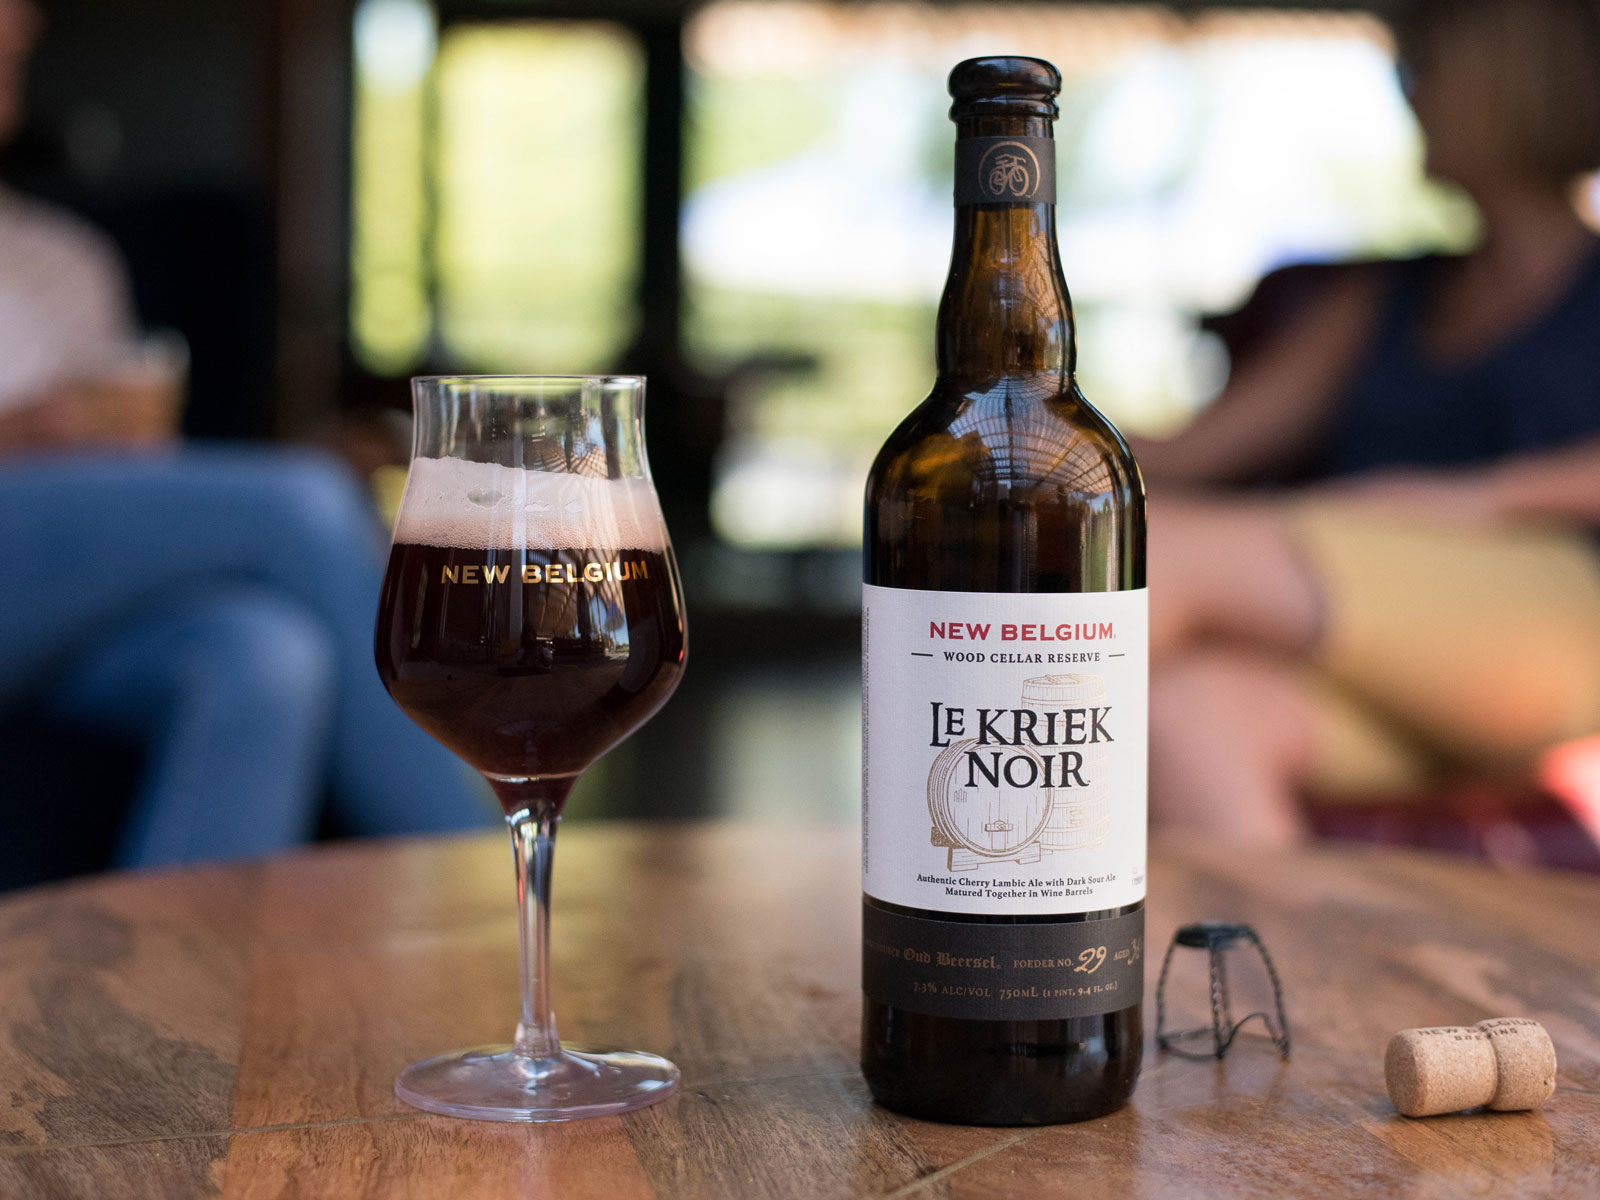 New Belgium Brewing's Le Kriek Noir